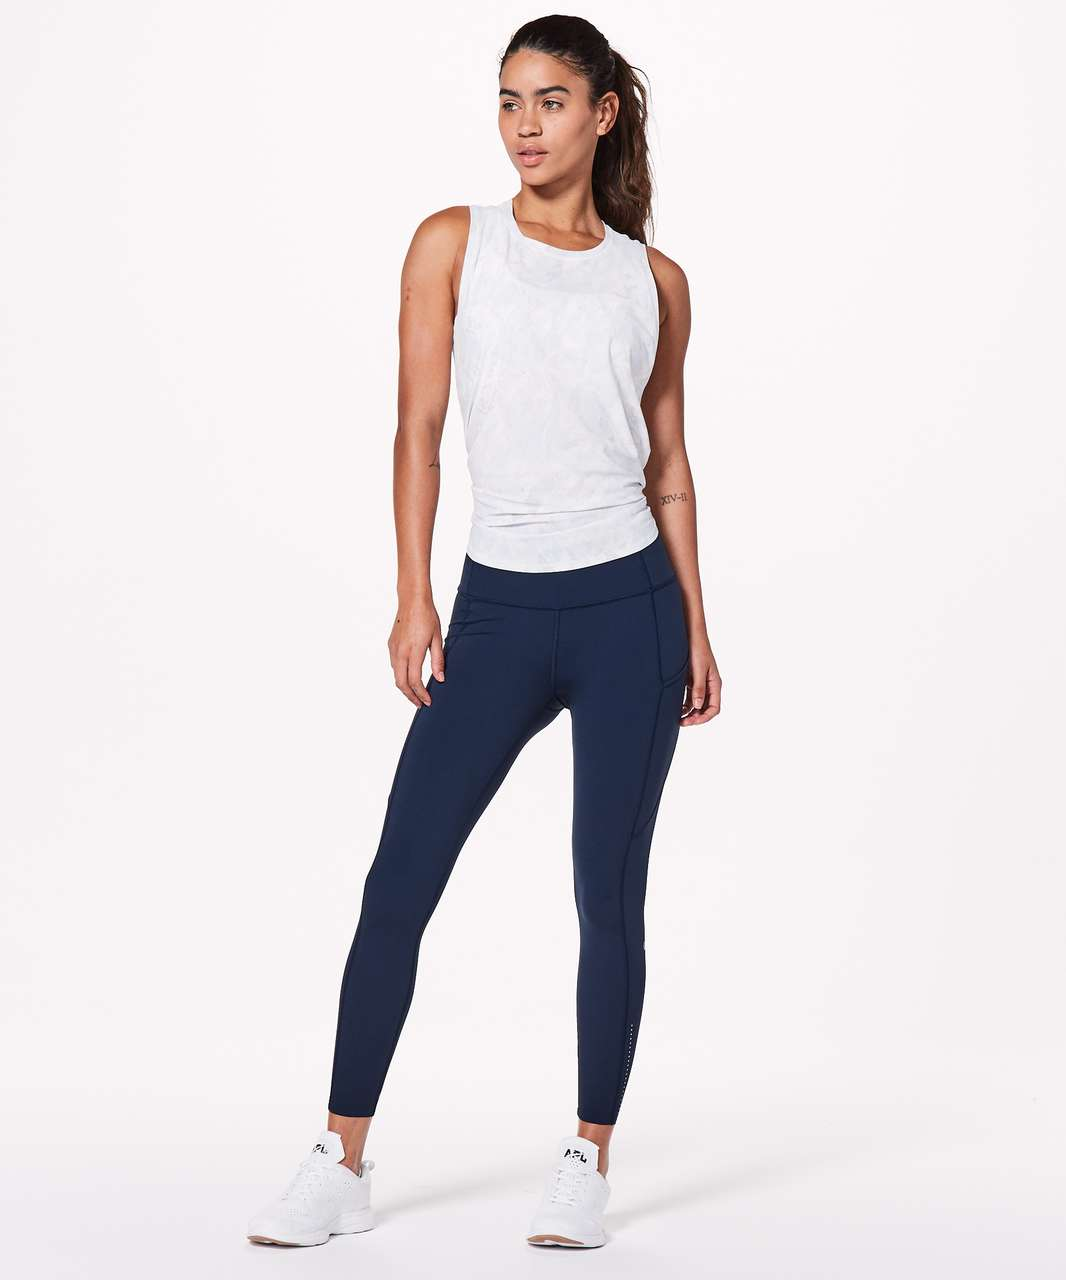 "Lululemon Fast & Free 7/8 Tight II *Nulux 25"" - True Navy (First Release)"